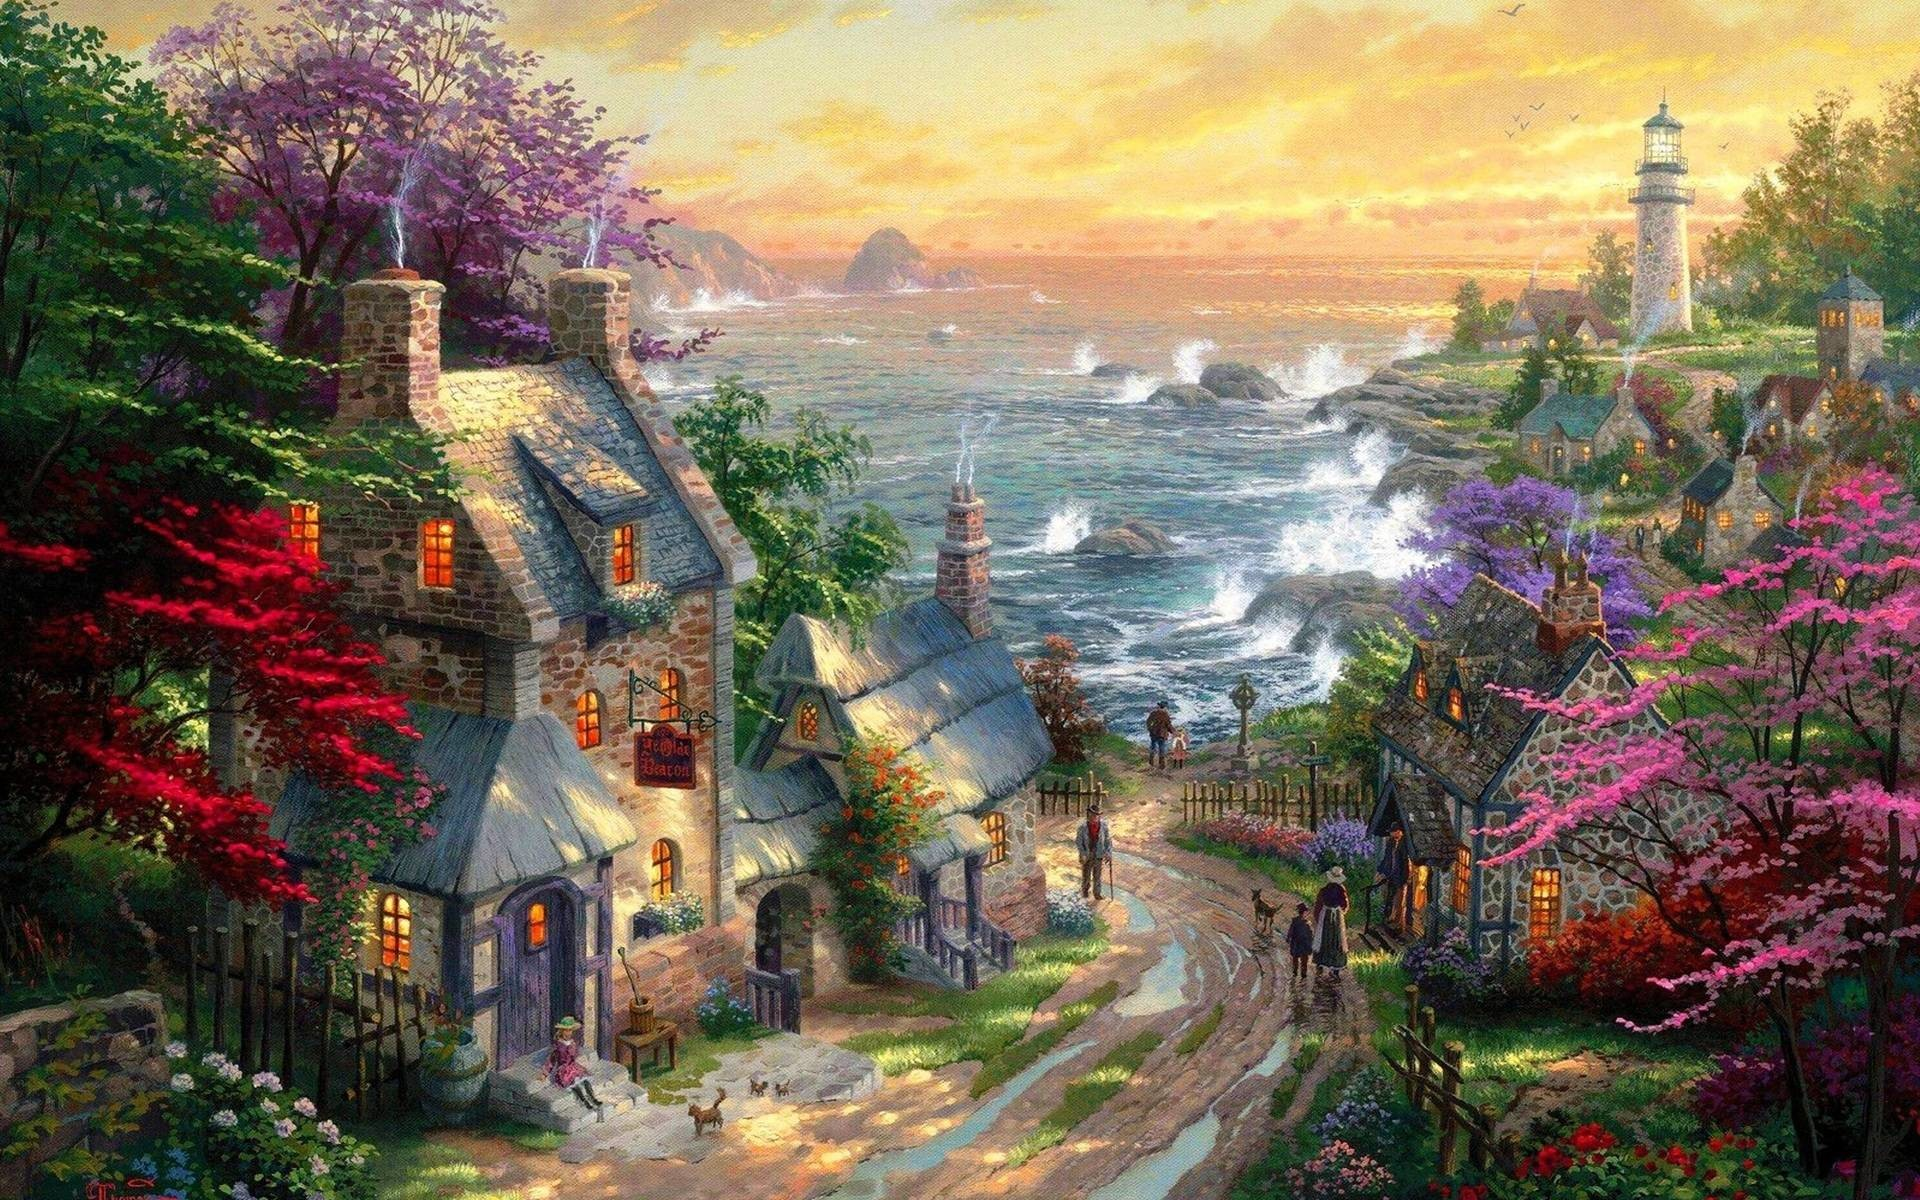 1920x1200 Wallpapers For > Thomas Kinkade Disney Dreams Collection Wallpaper